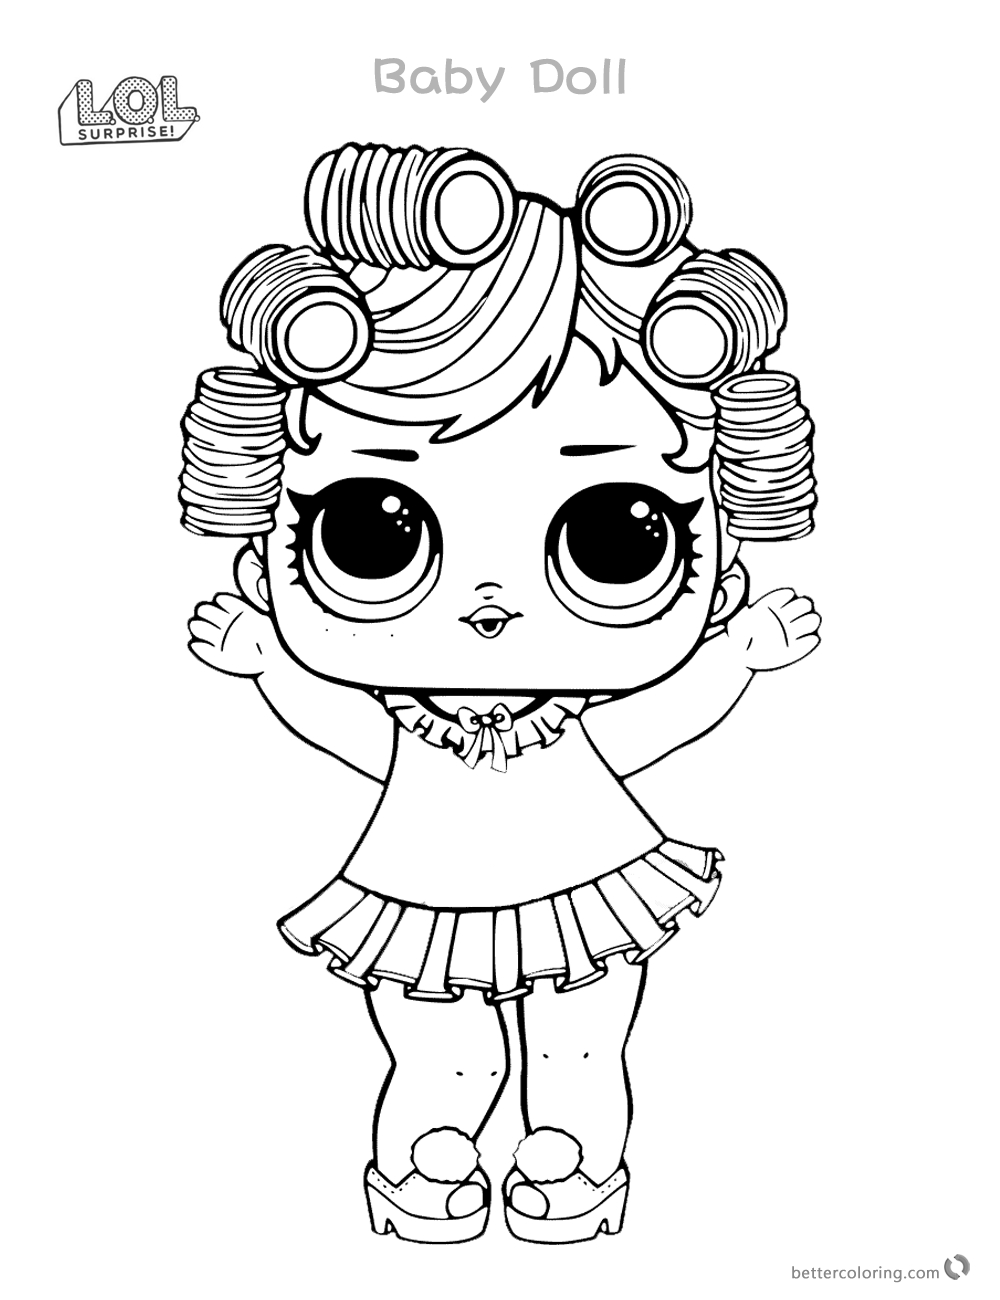 Lol Dolls Coloring Pages At Getdrawings Com Free For Personal Use